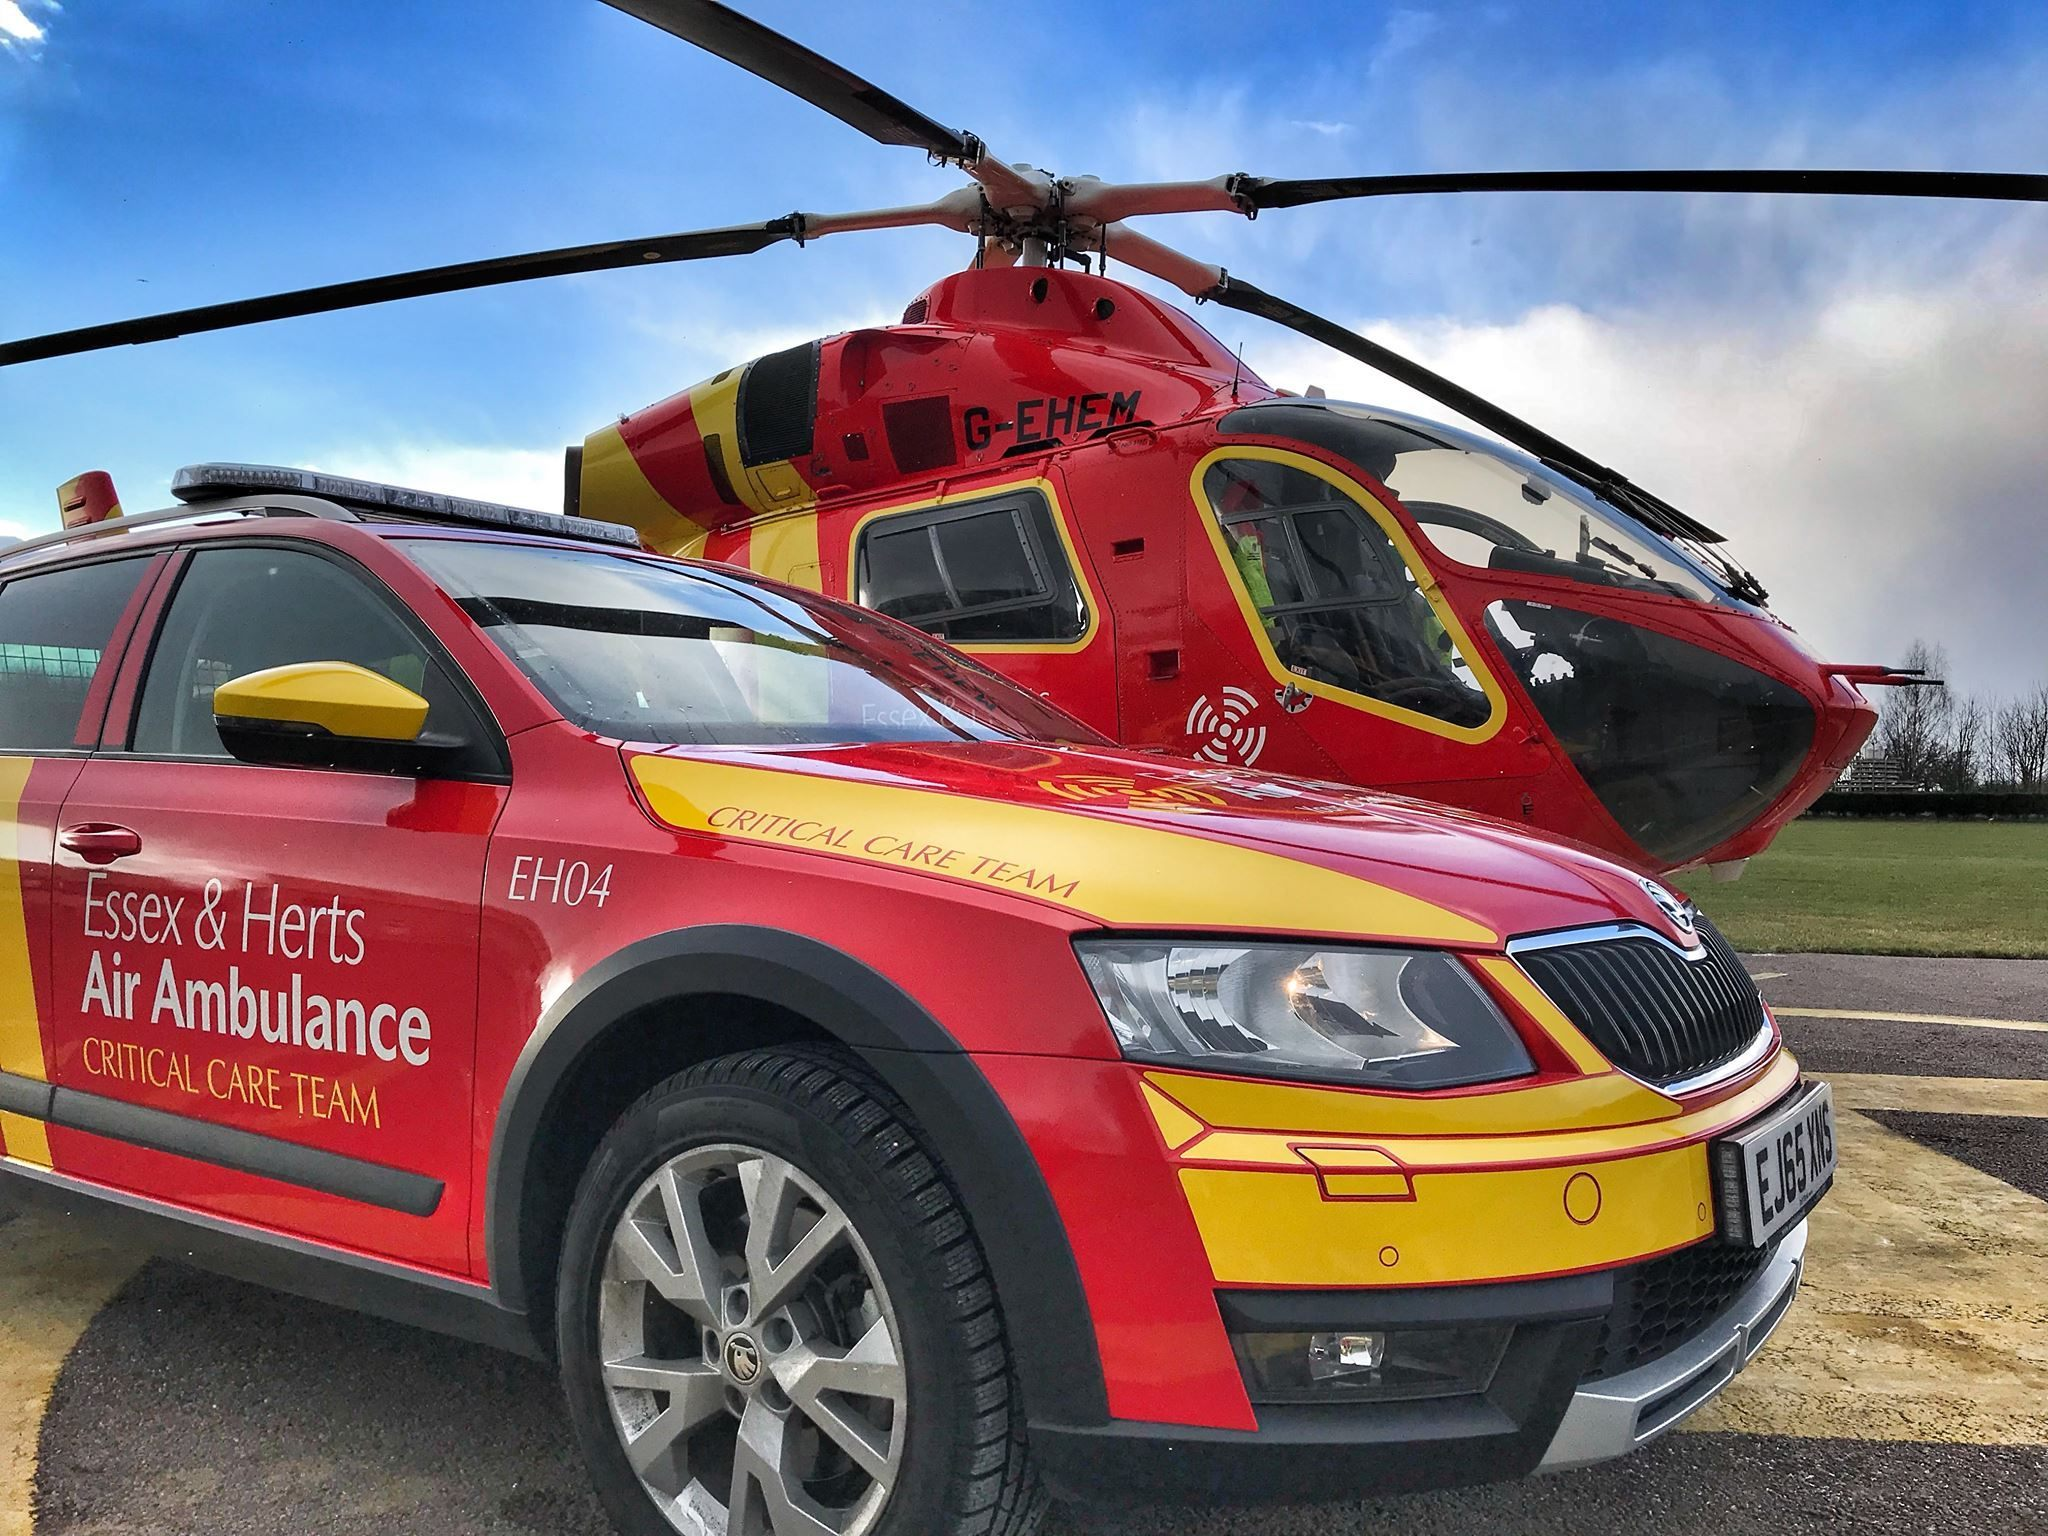 The Essex & Herts Air Ambulance helicopter and RRV